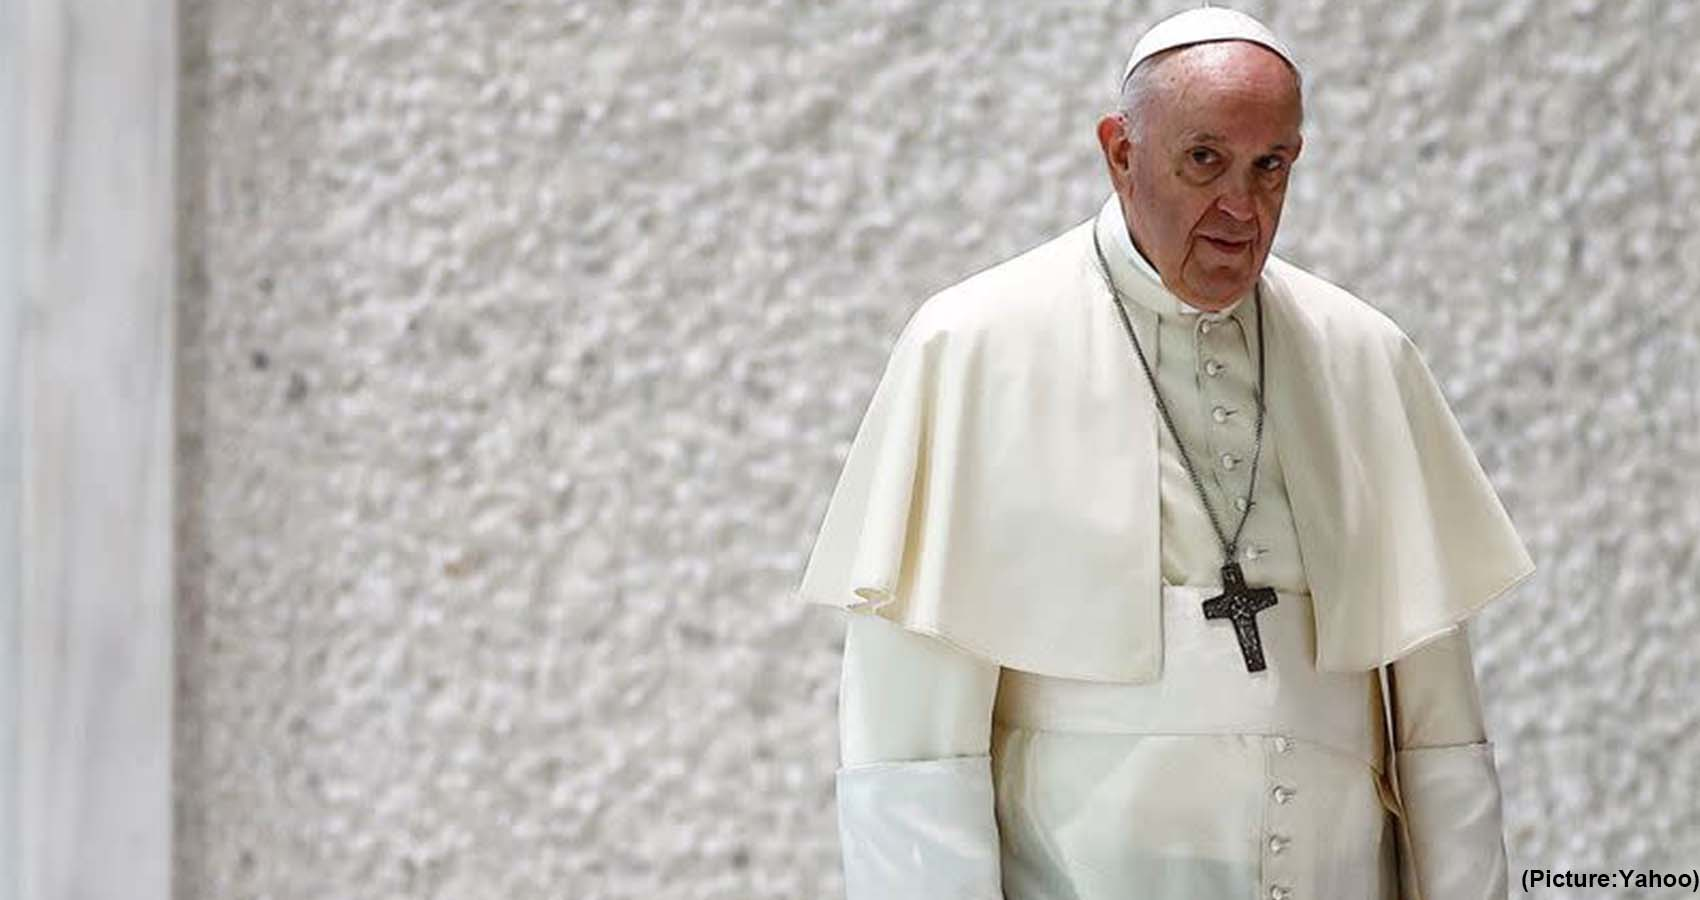 Christian Leaders Unite To Issue Stark Warning Over Climate Crisis